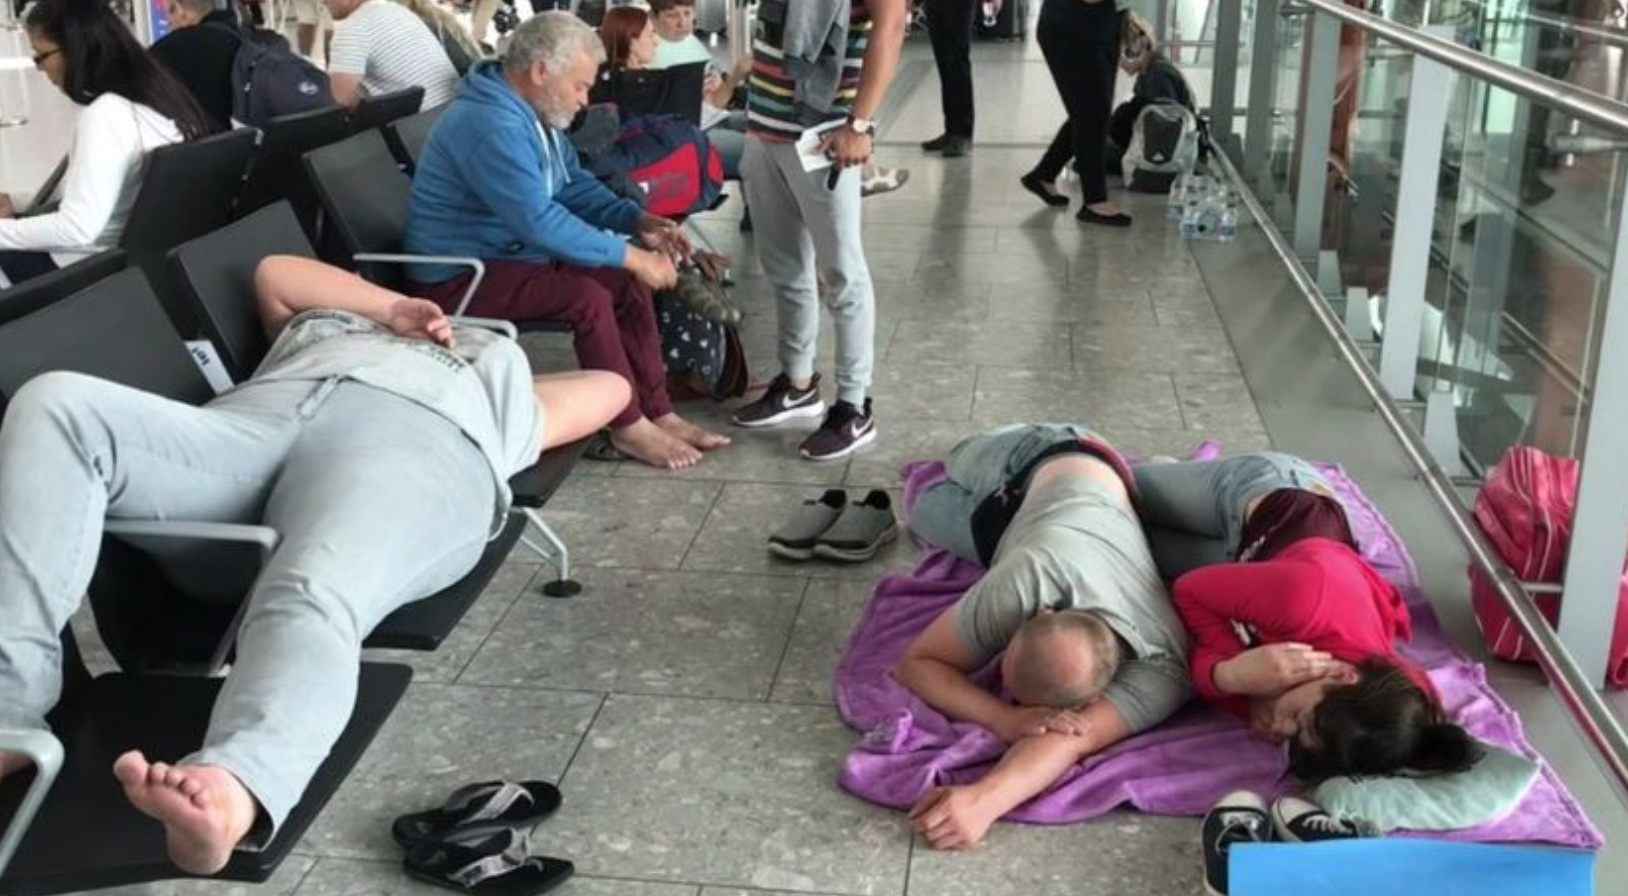 Do come back and enjoy British hospitality - Heathrow is planning more airport development with seating specially designed to prevent anyone sleeping on them. This weekend some lucky passengers were offered yoga mats to soften the hard floor.